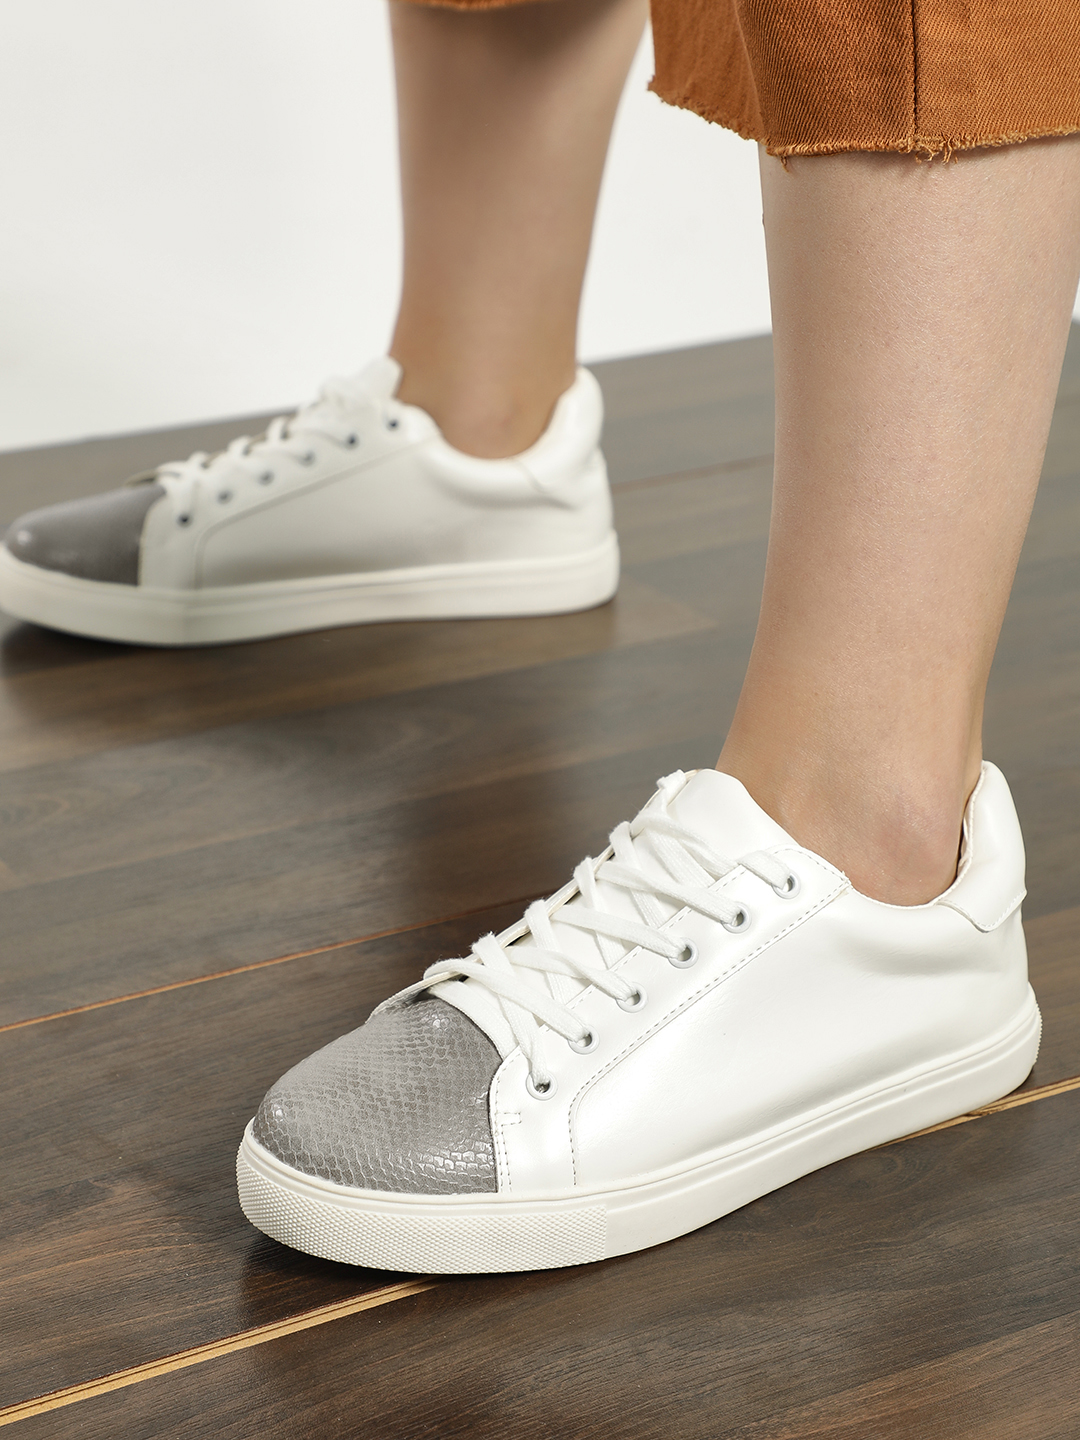 My Foot Couture white/grey Snake Print Toe Sneakers 1